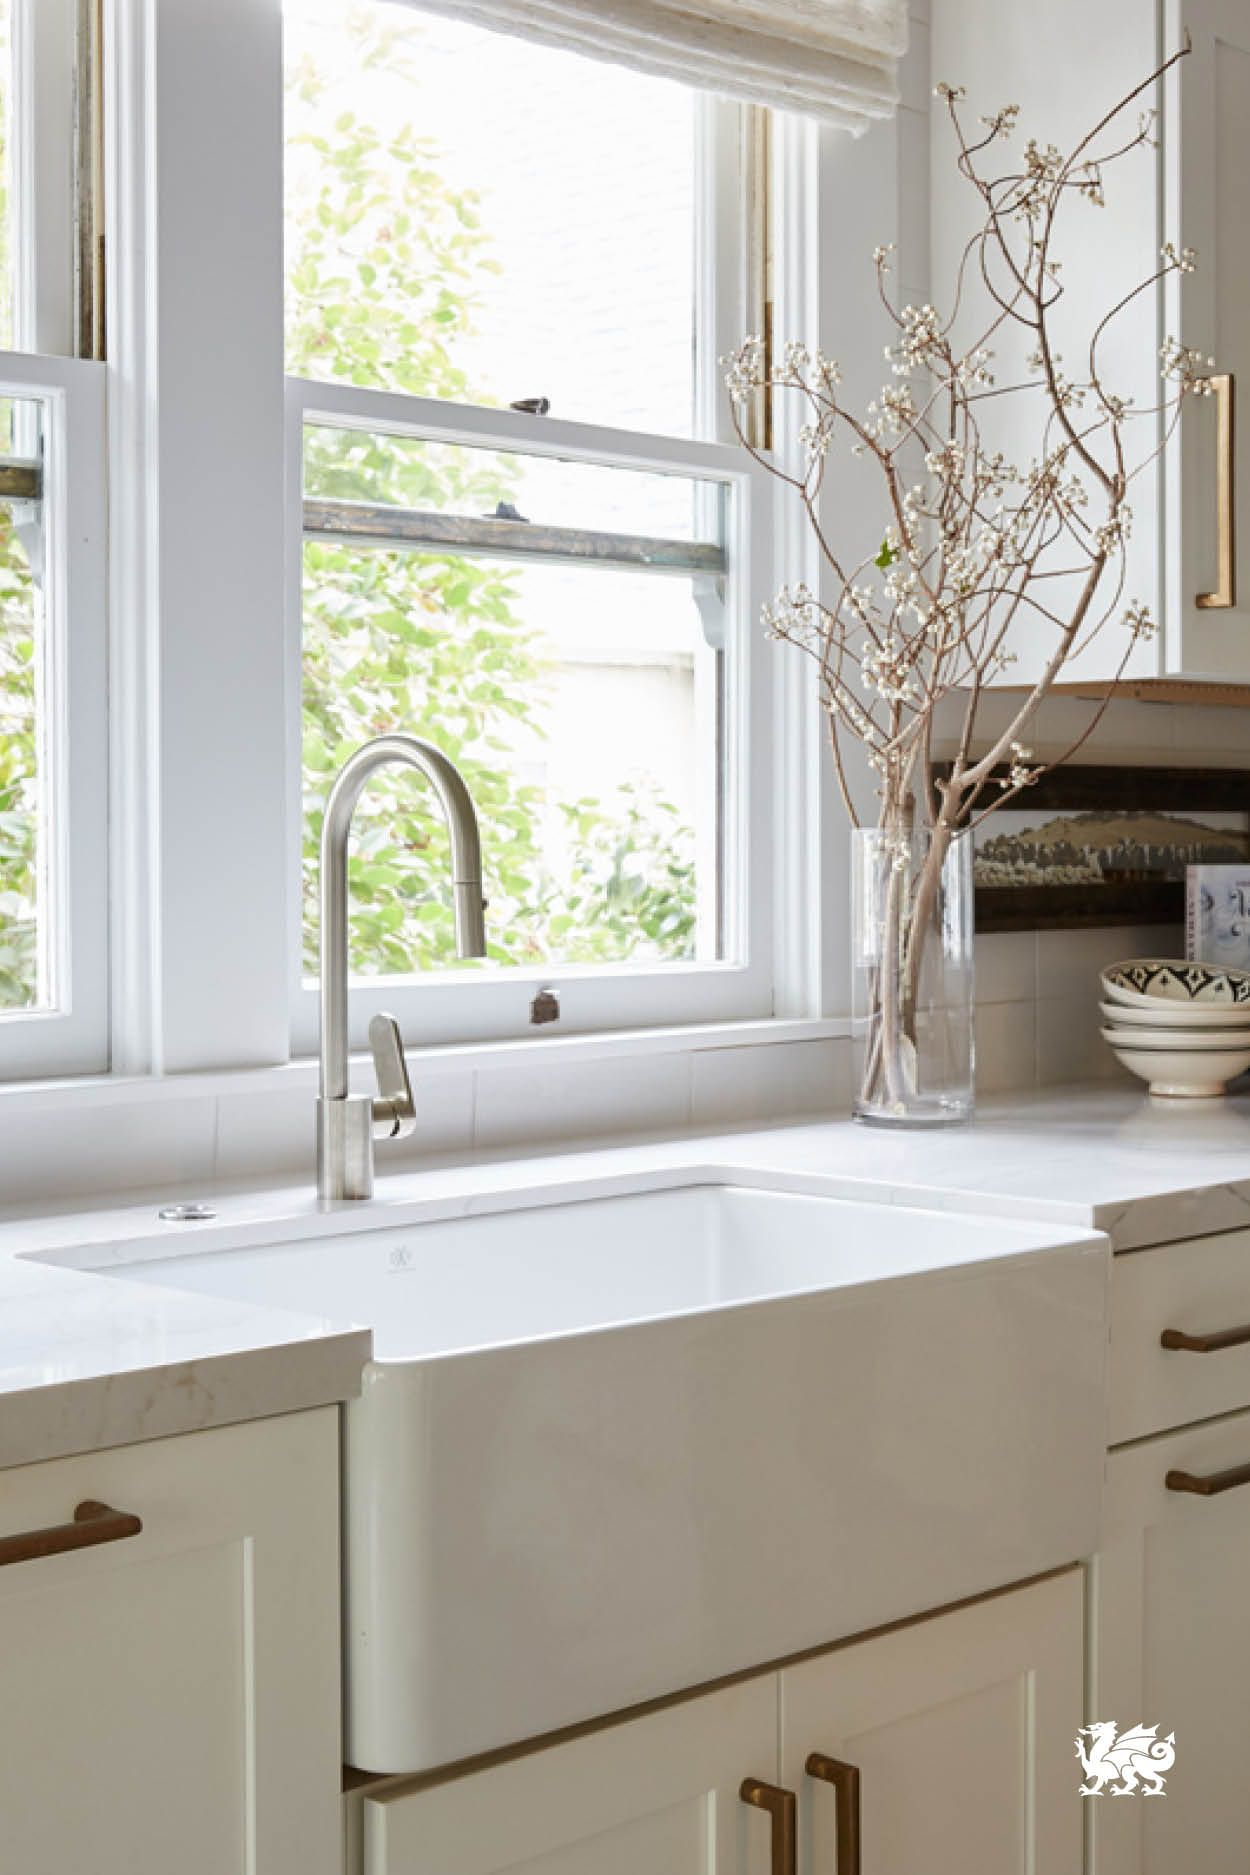 A Beautiful White Farmhouse Sink Takes Center Stage In This